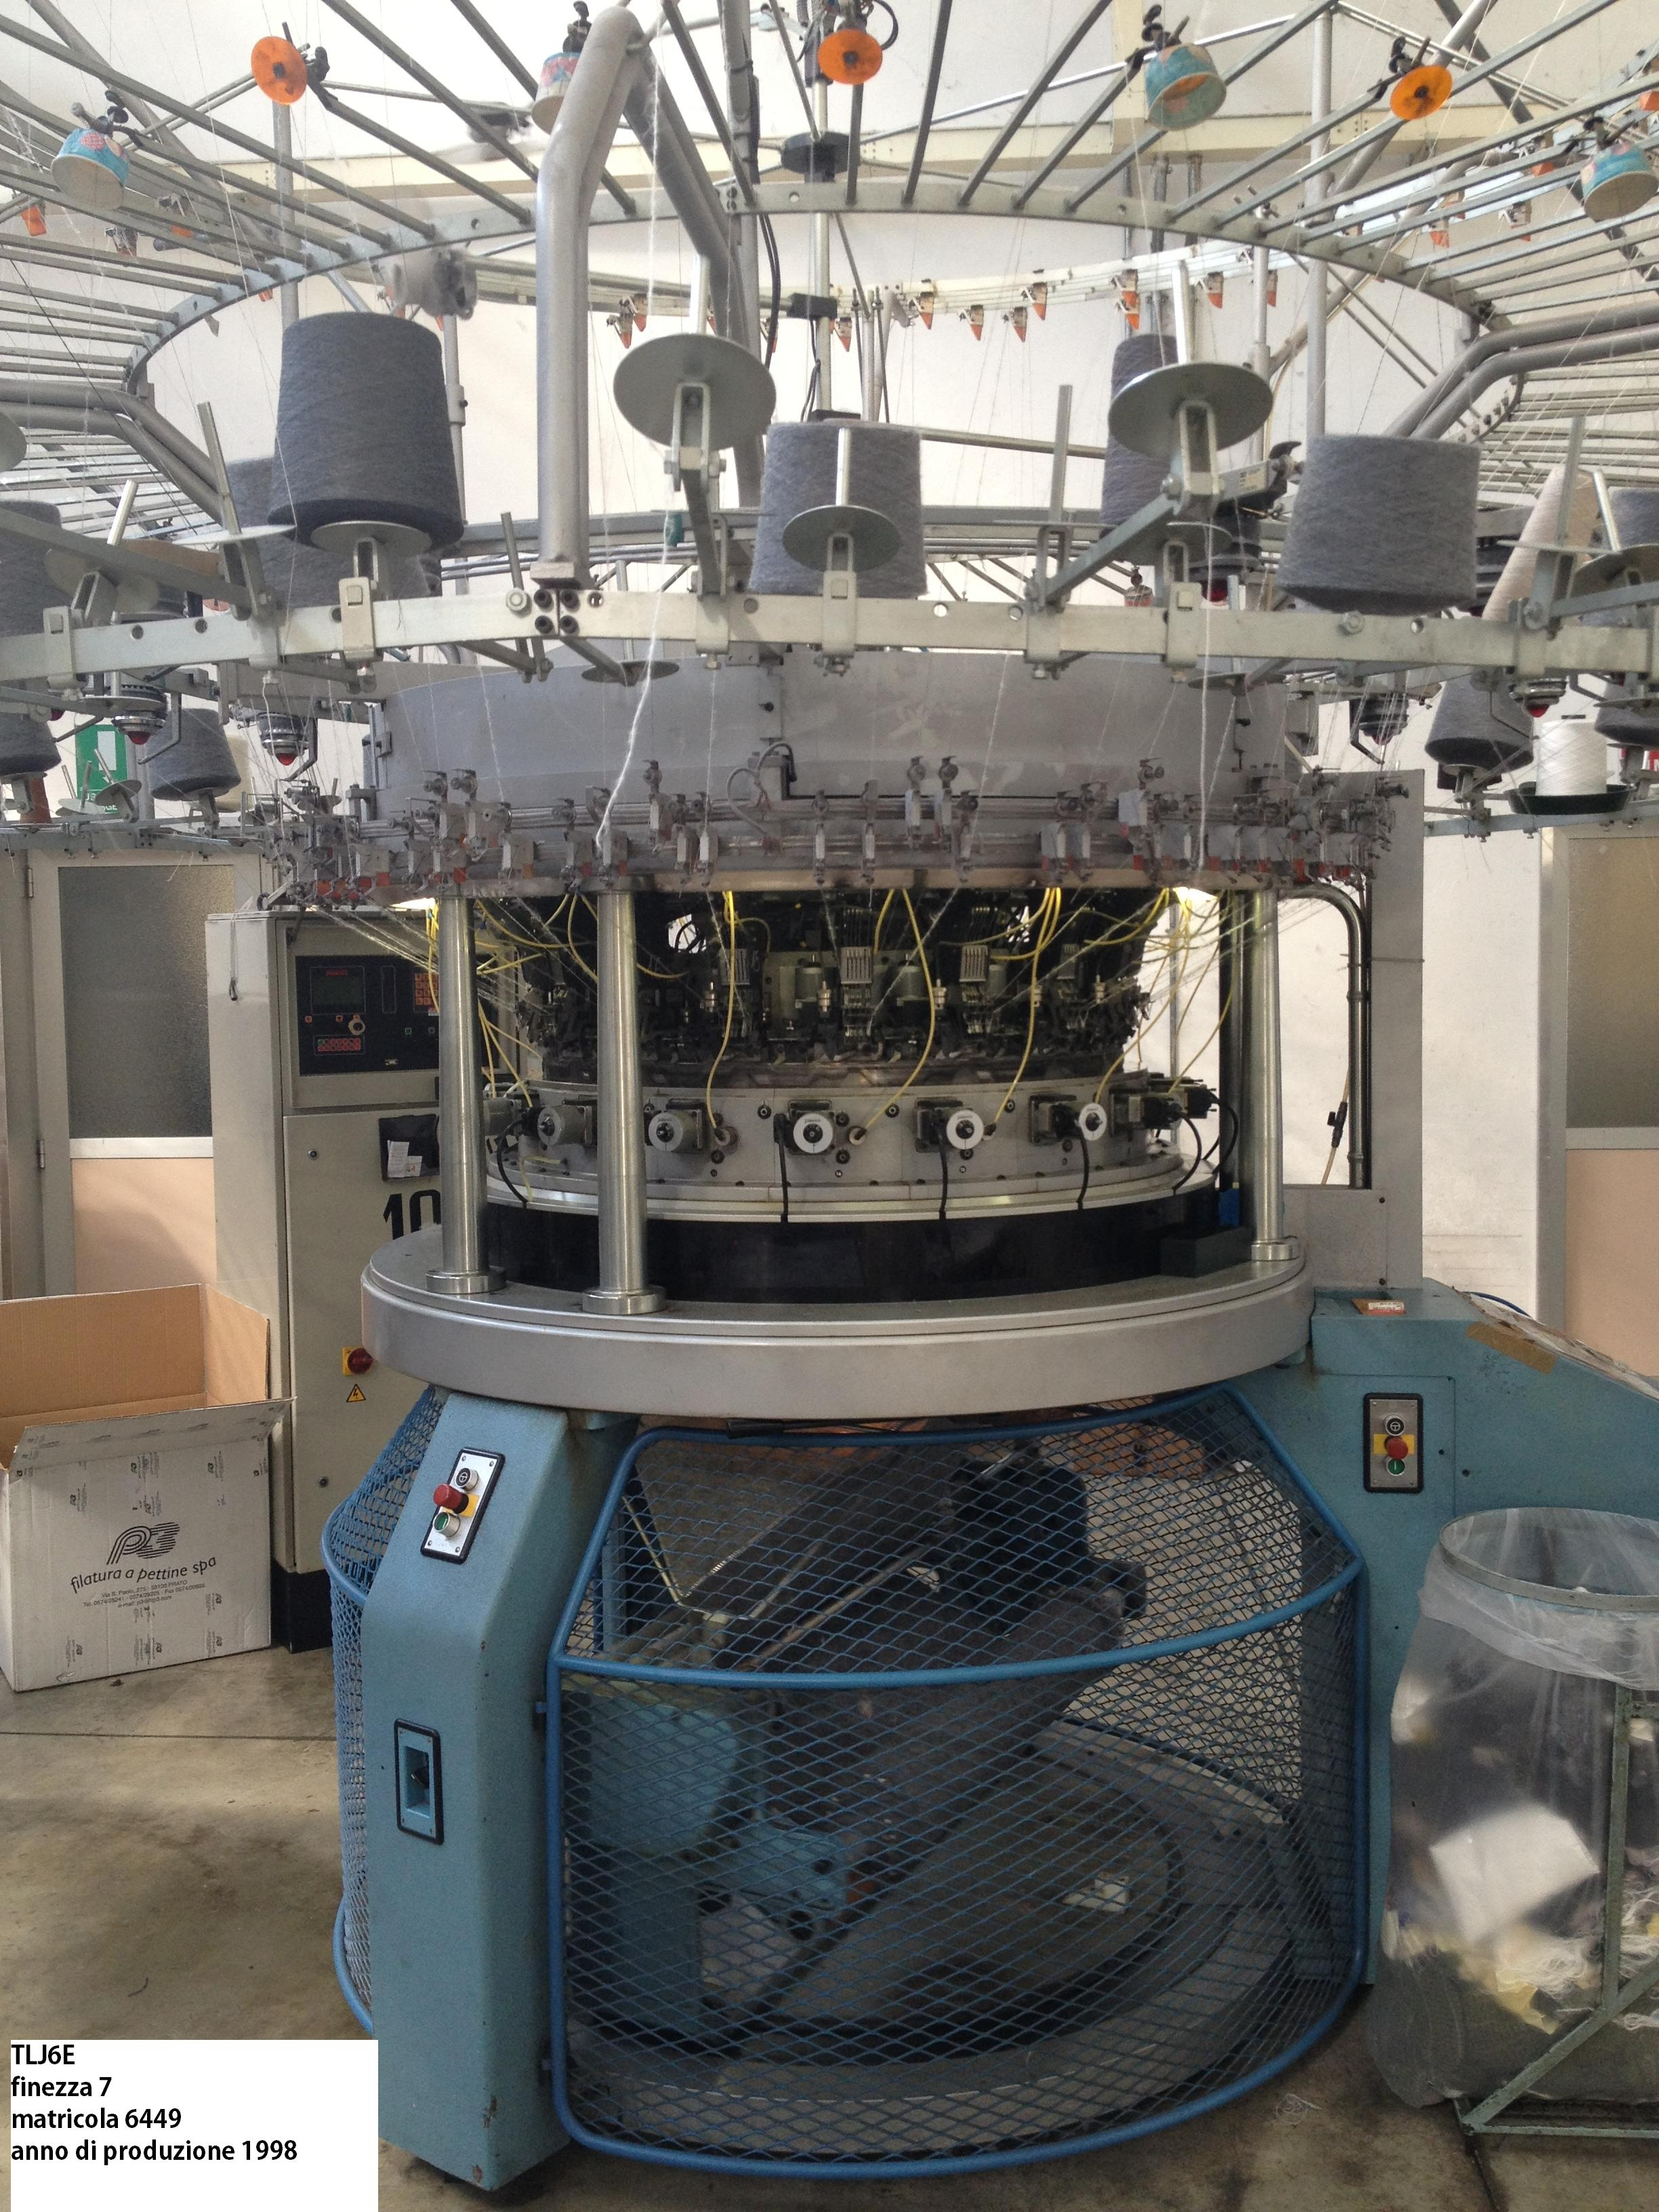 Knitting Machine For Sale South Africa : Circular knitting machine for sale south africa sweater